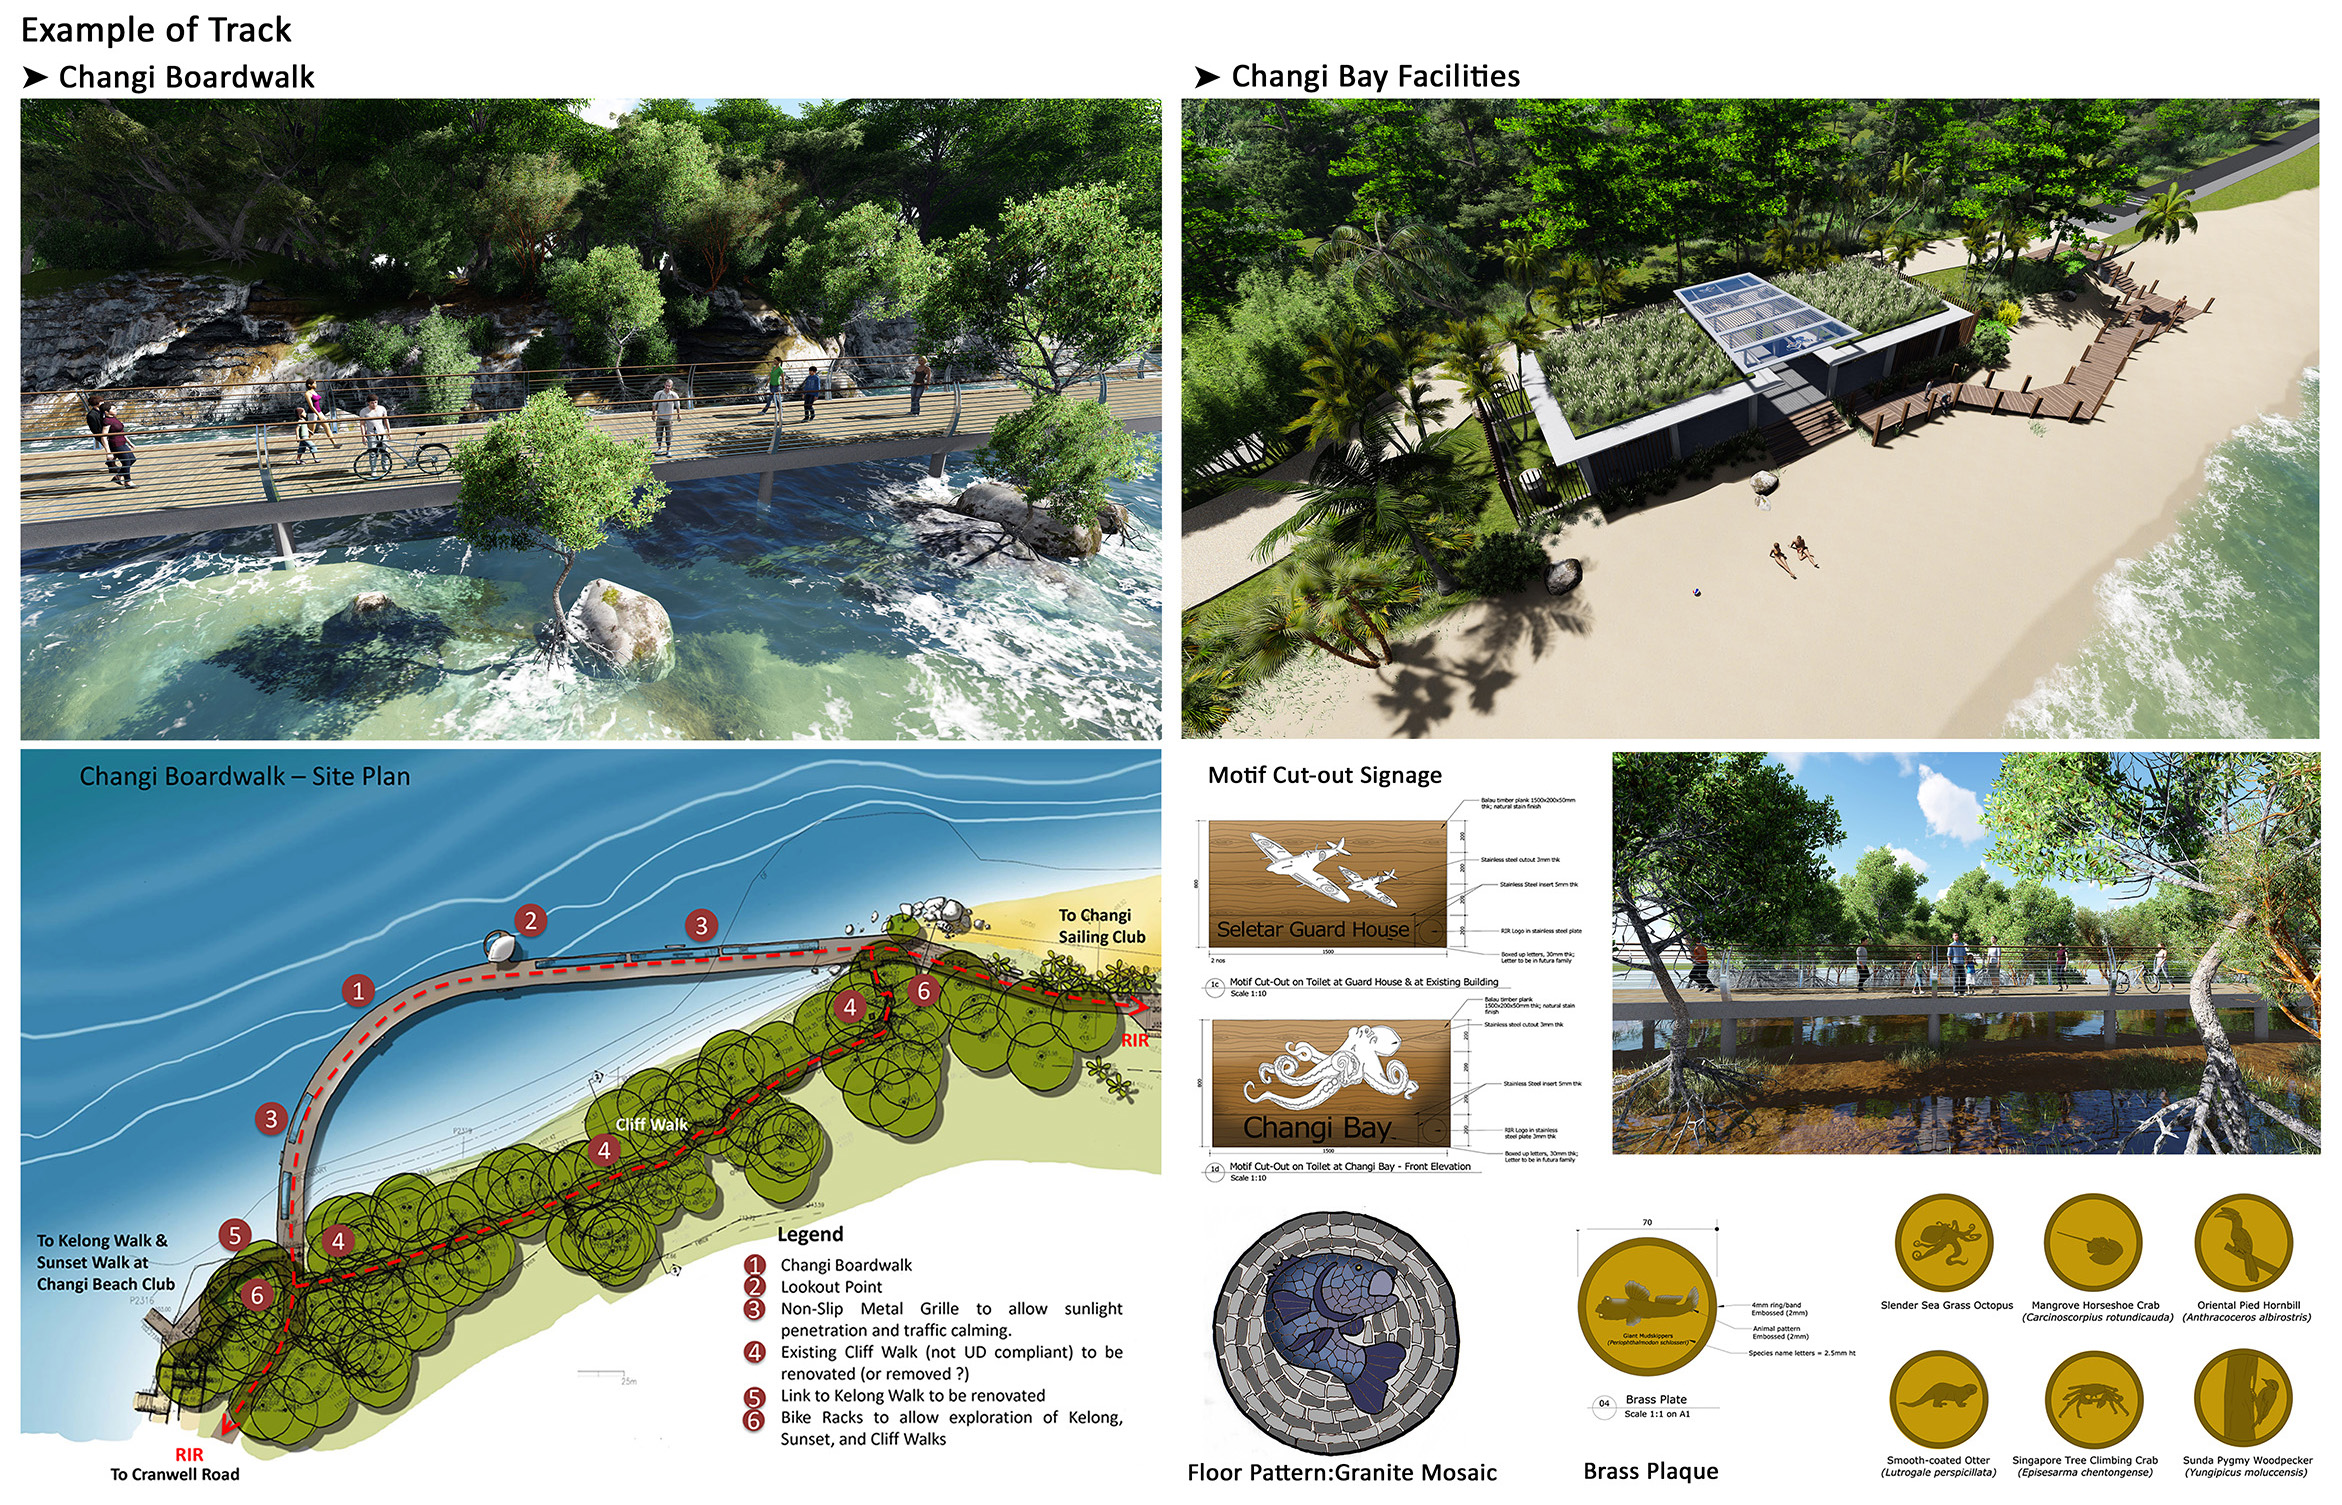 SCLD's work on the Round Island Route includes Design of the Route and Facilities as well as Signage and Artwork elements that enhance the experience for users